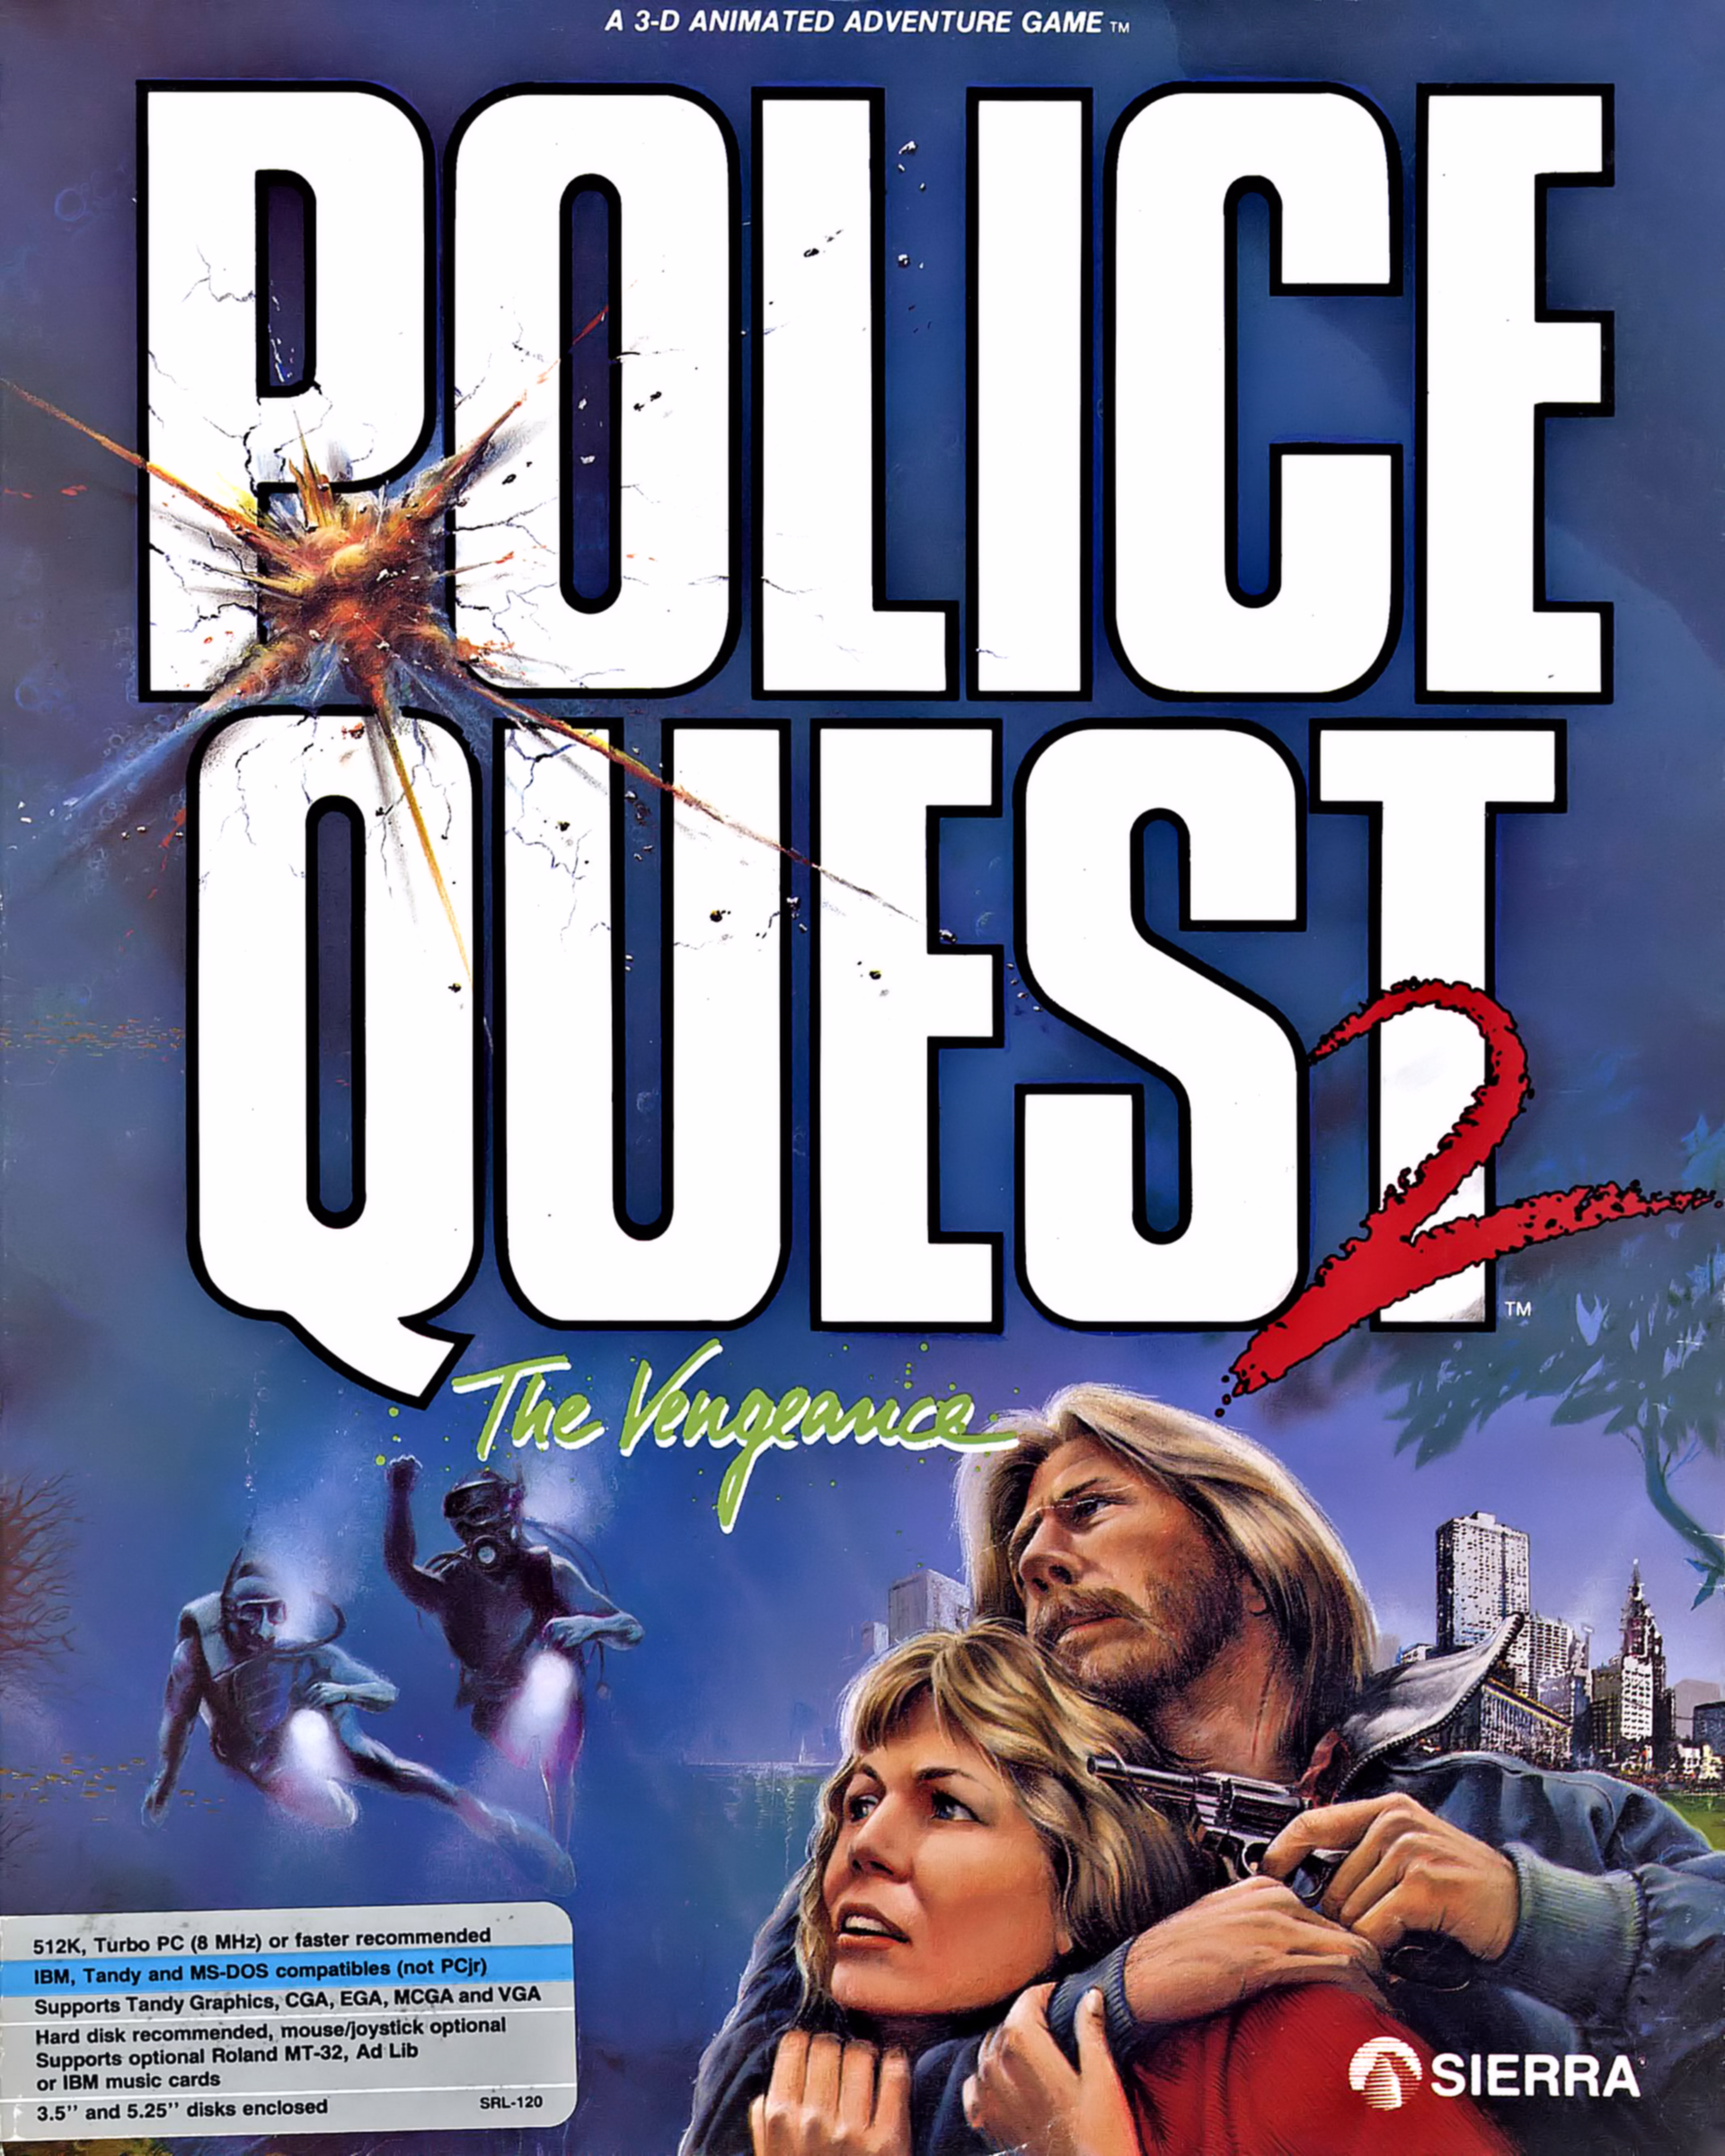 Police Quest 2, a Sierra computer adventure game